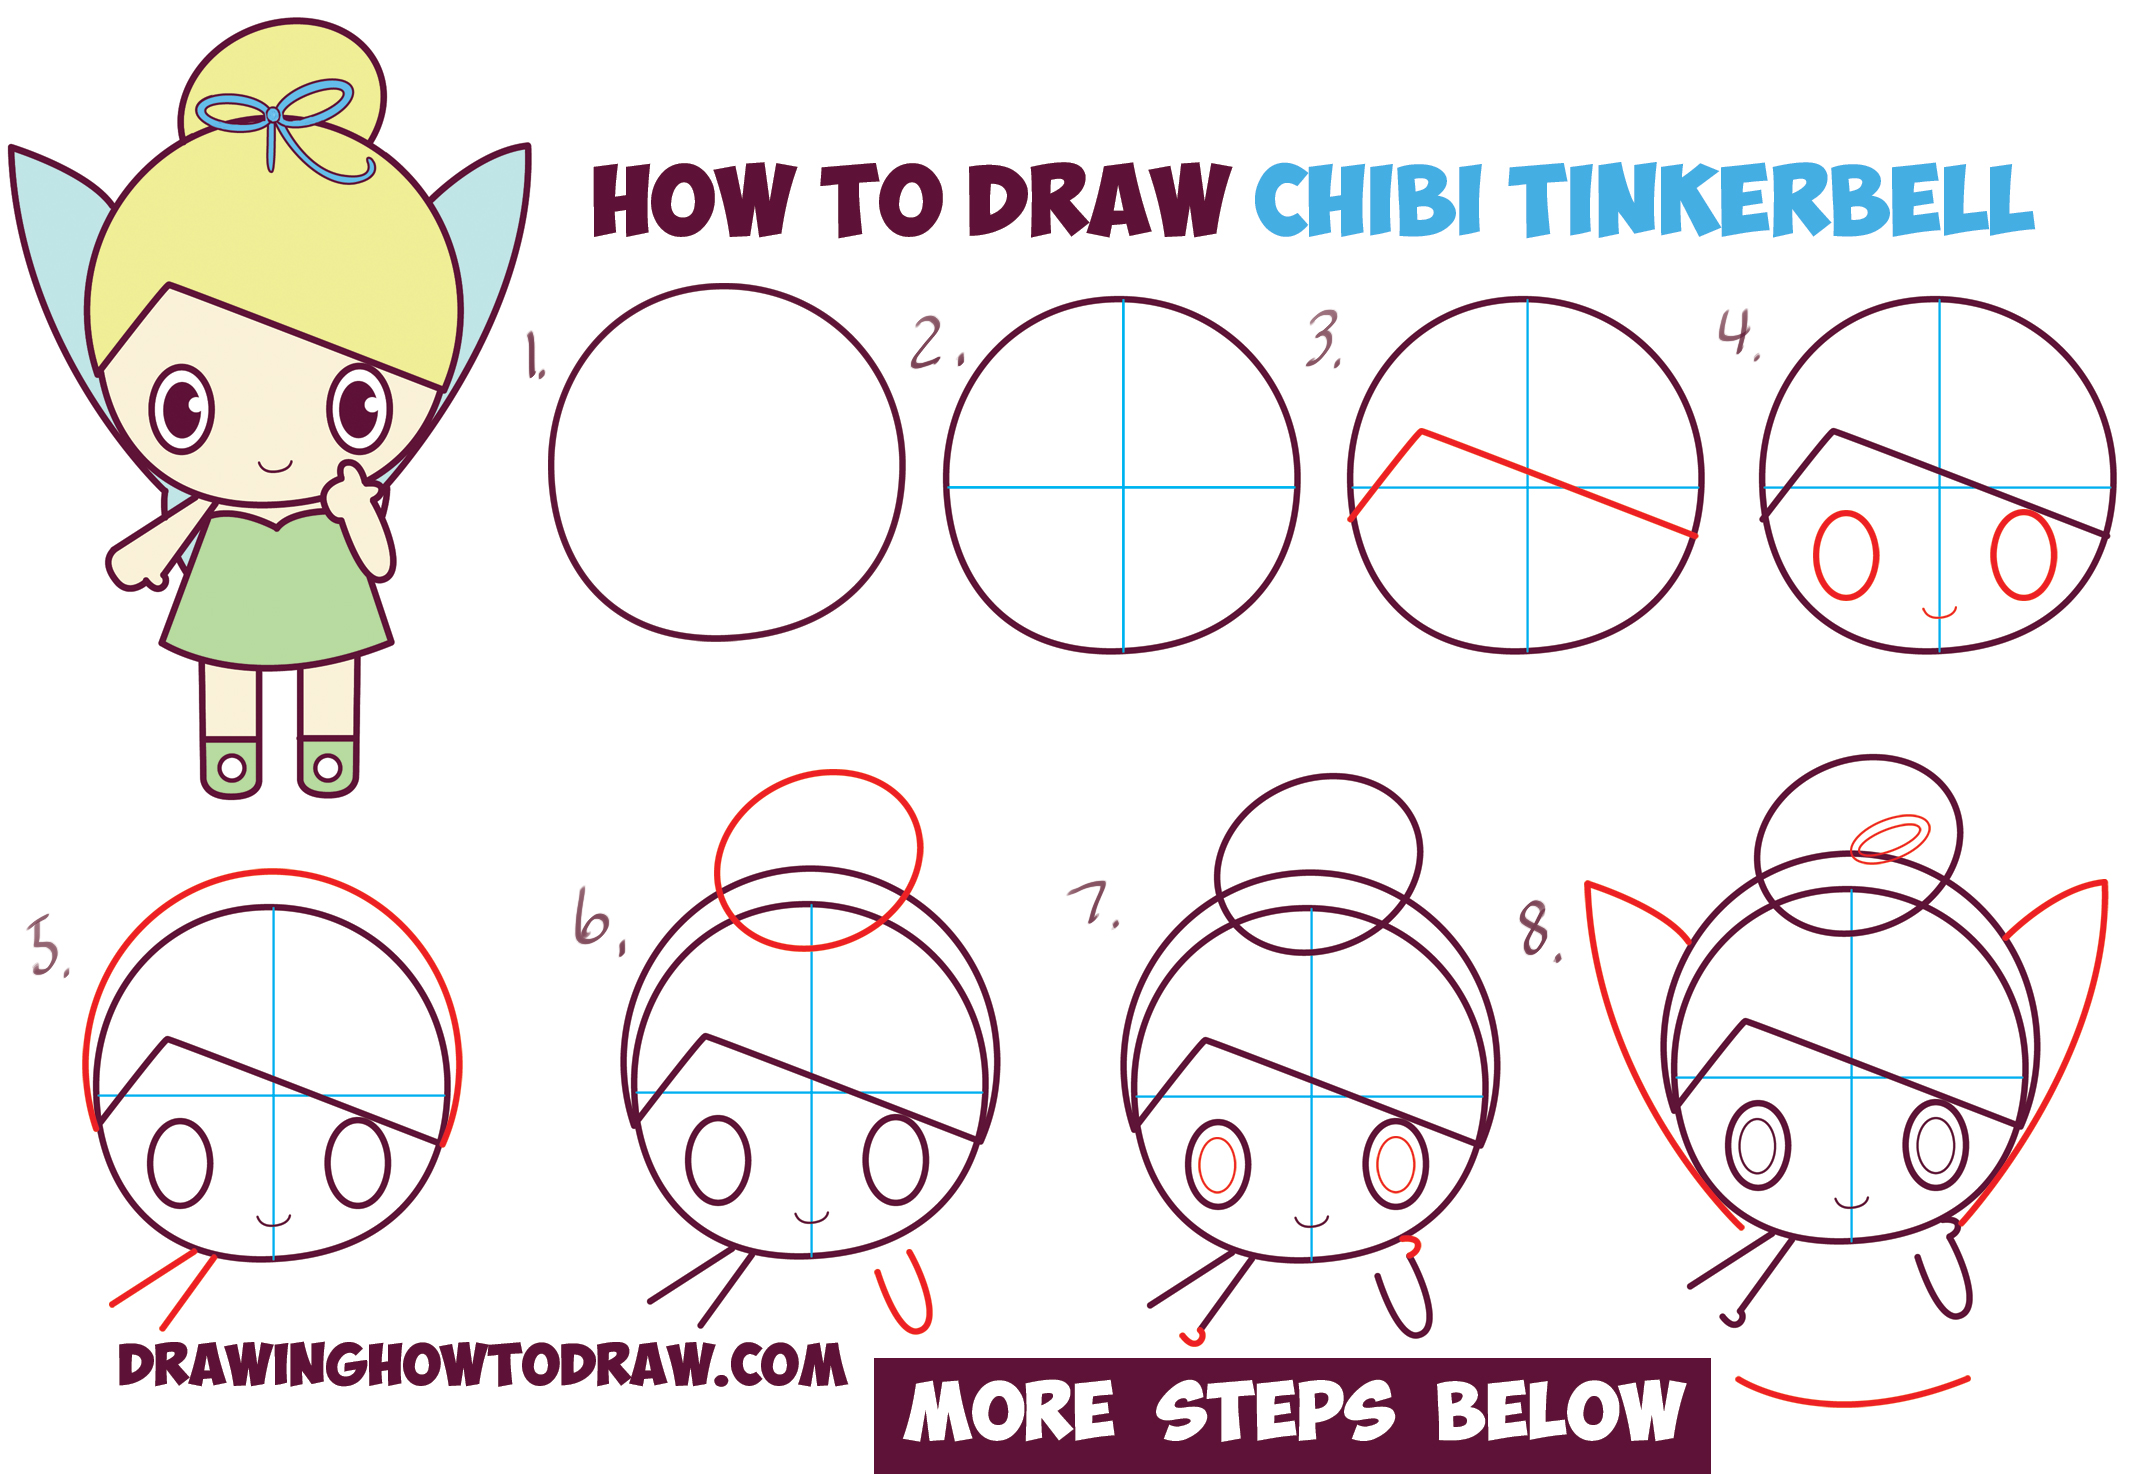 How To Draw Chibi Tinkerbell